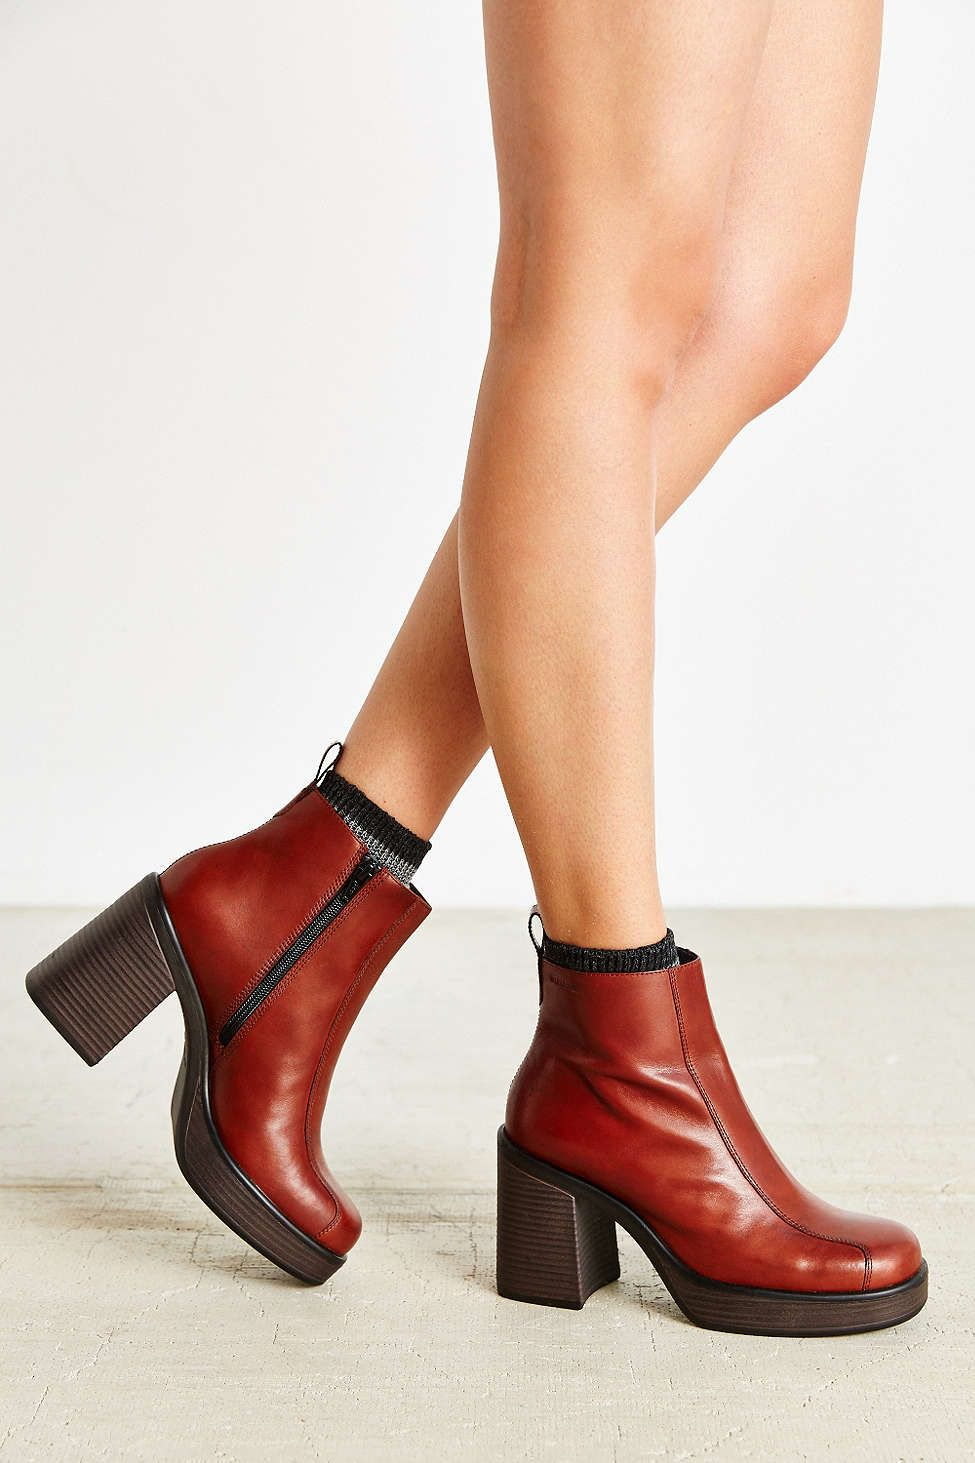 33106656640f Vagabond Tyra Boot - Urban Outfitters   Style   Boots, Vagabond ...